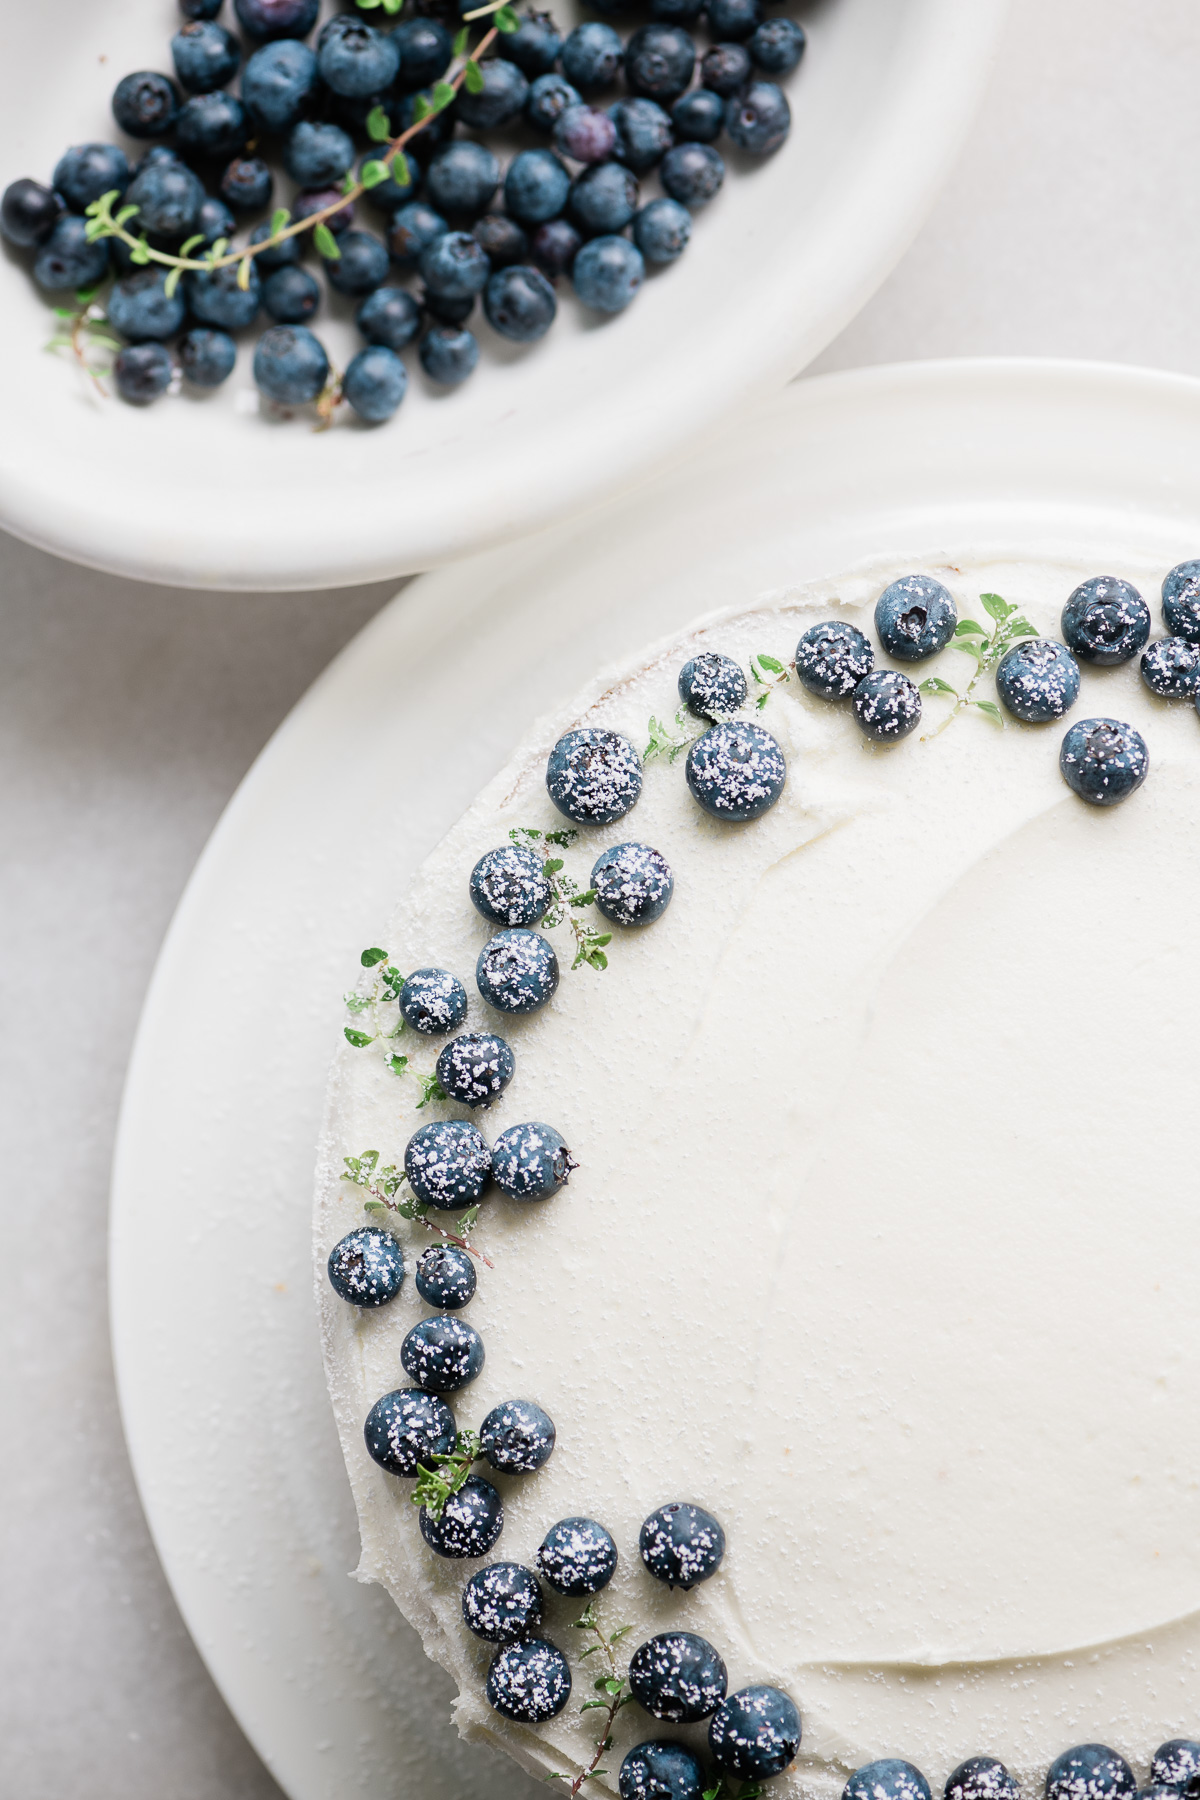 Blueberries decorating a blueberry lemon layer cake